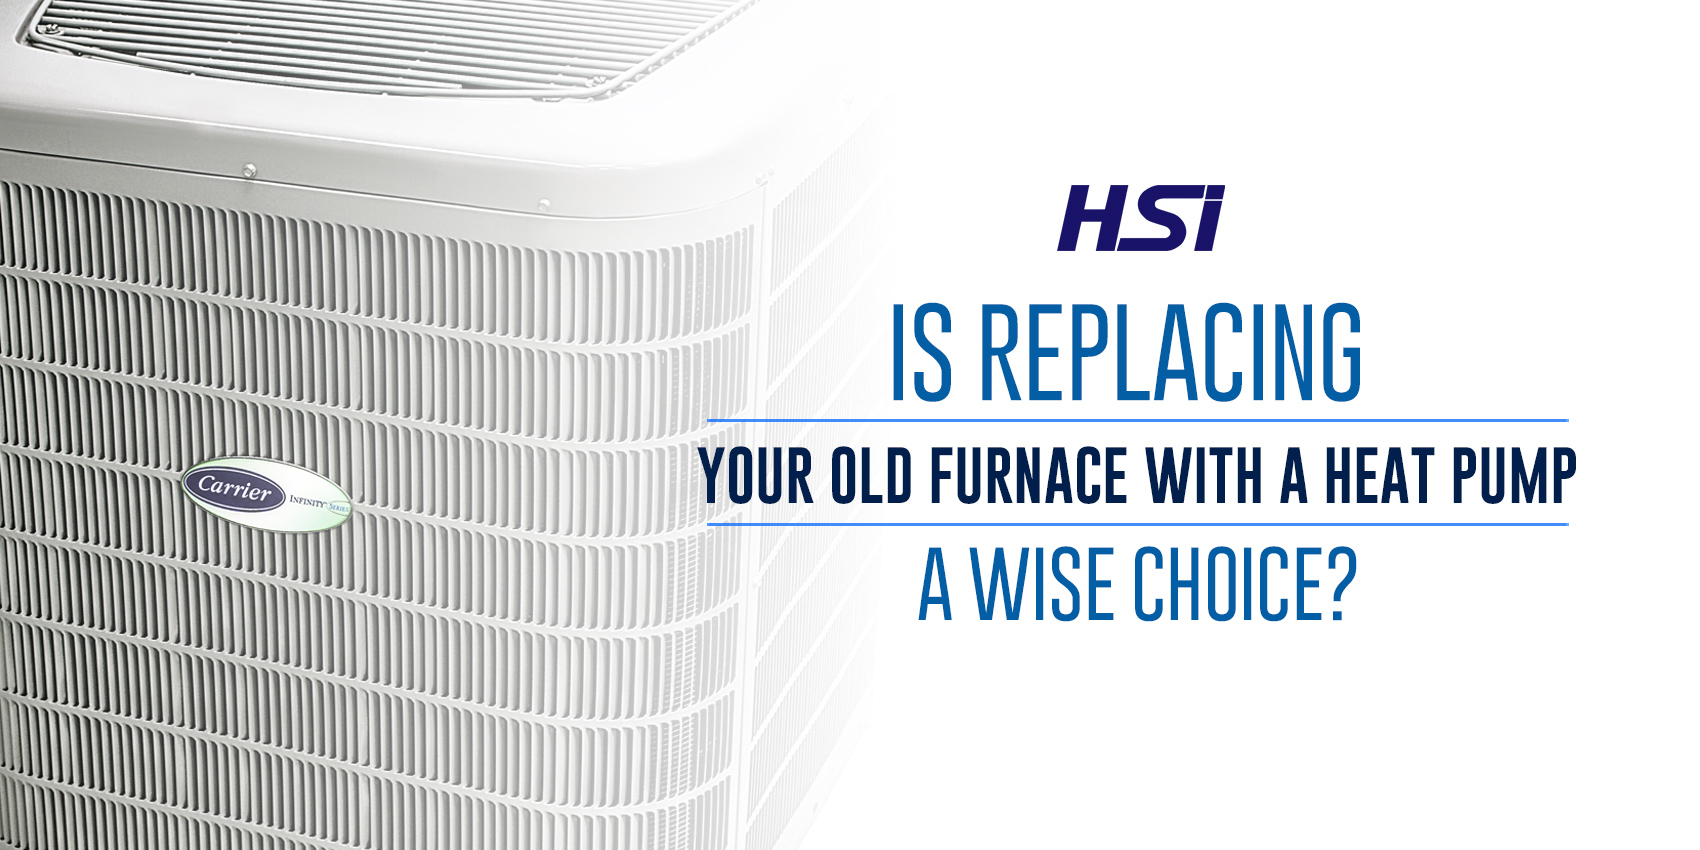 Is Replacing Your Old Furnace With A Heat Pump A Wise Choice?